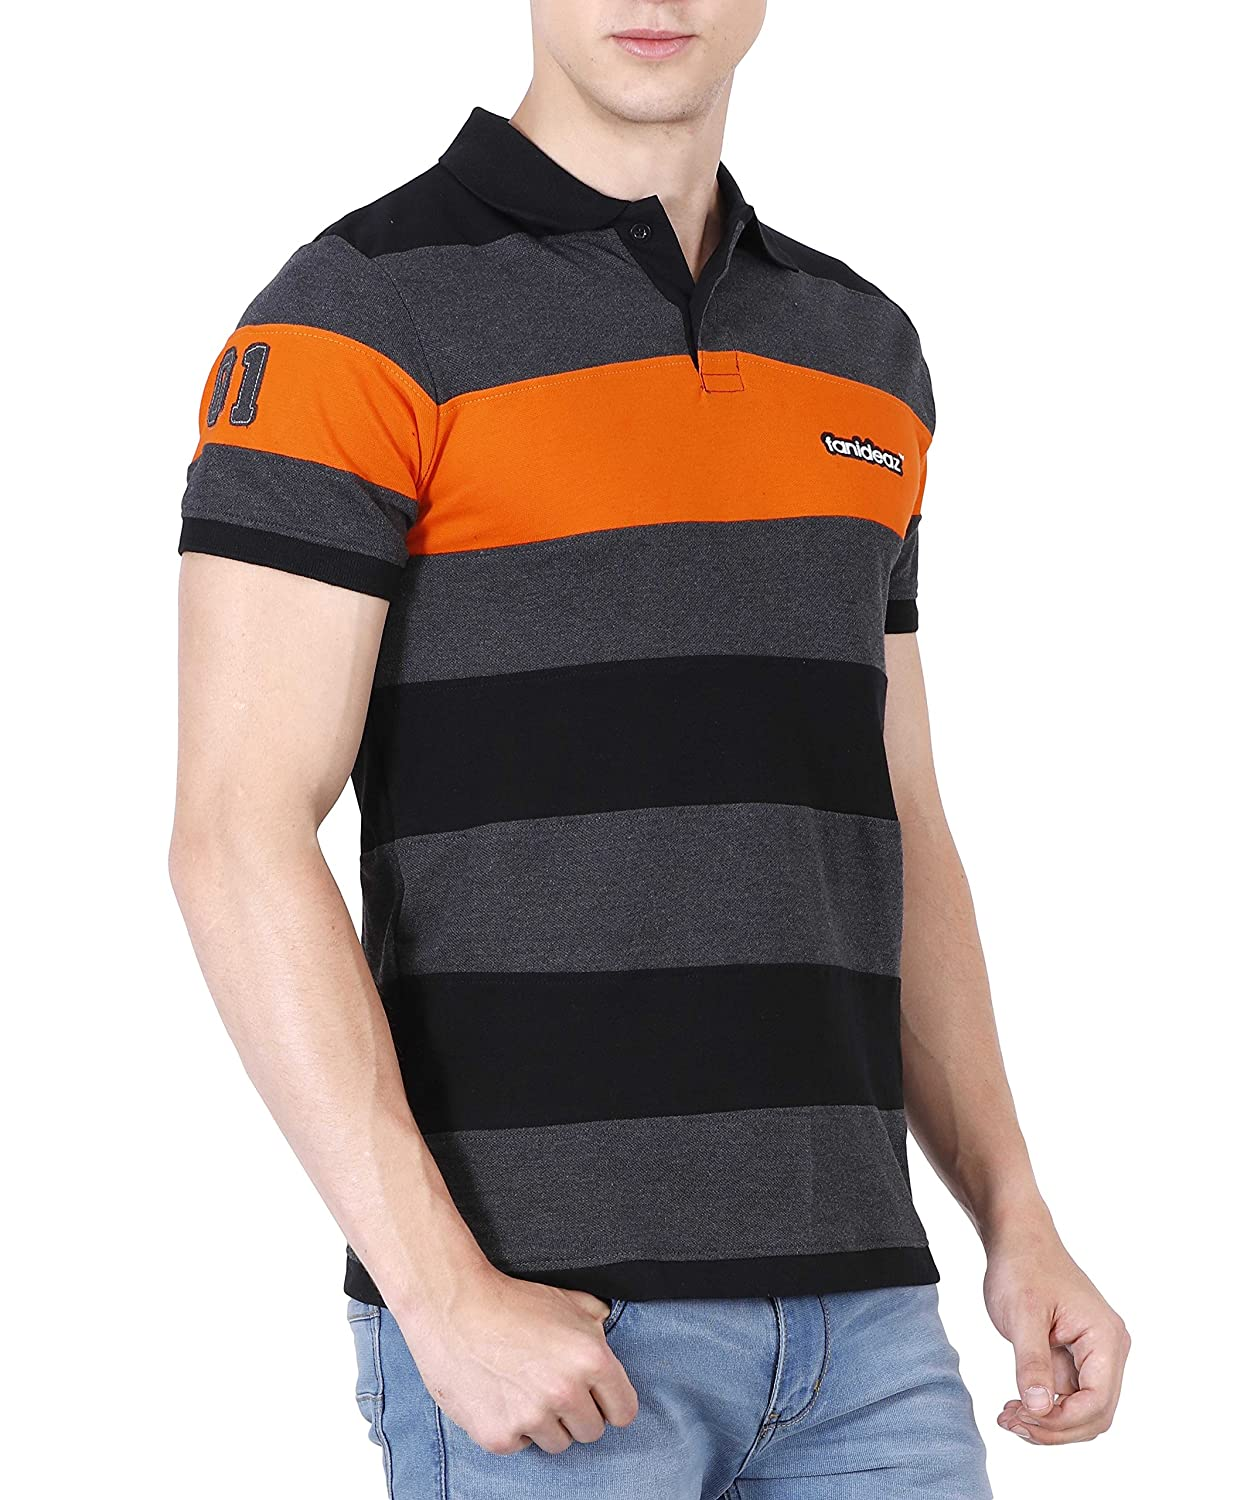 Online Shopping for Polo T shirts at Low Prices on Snapdeal